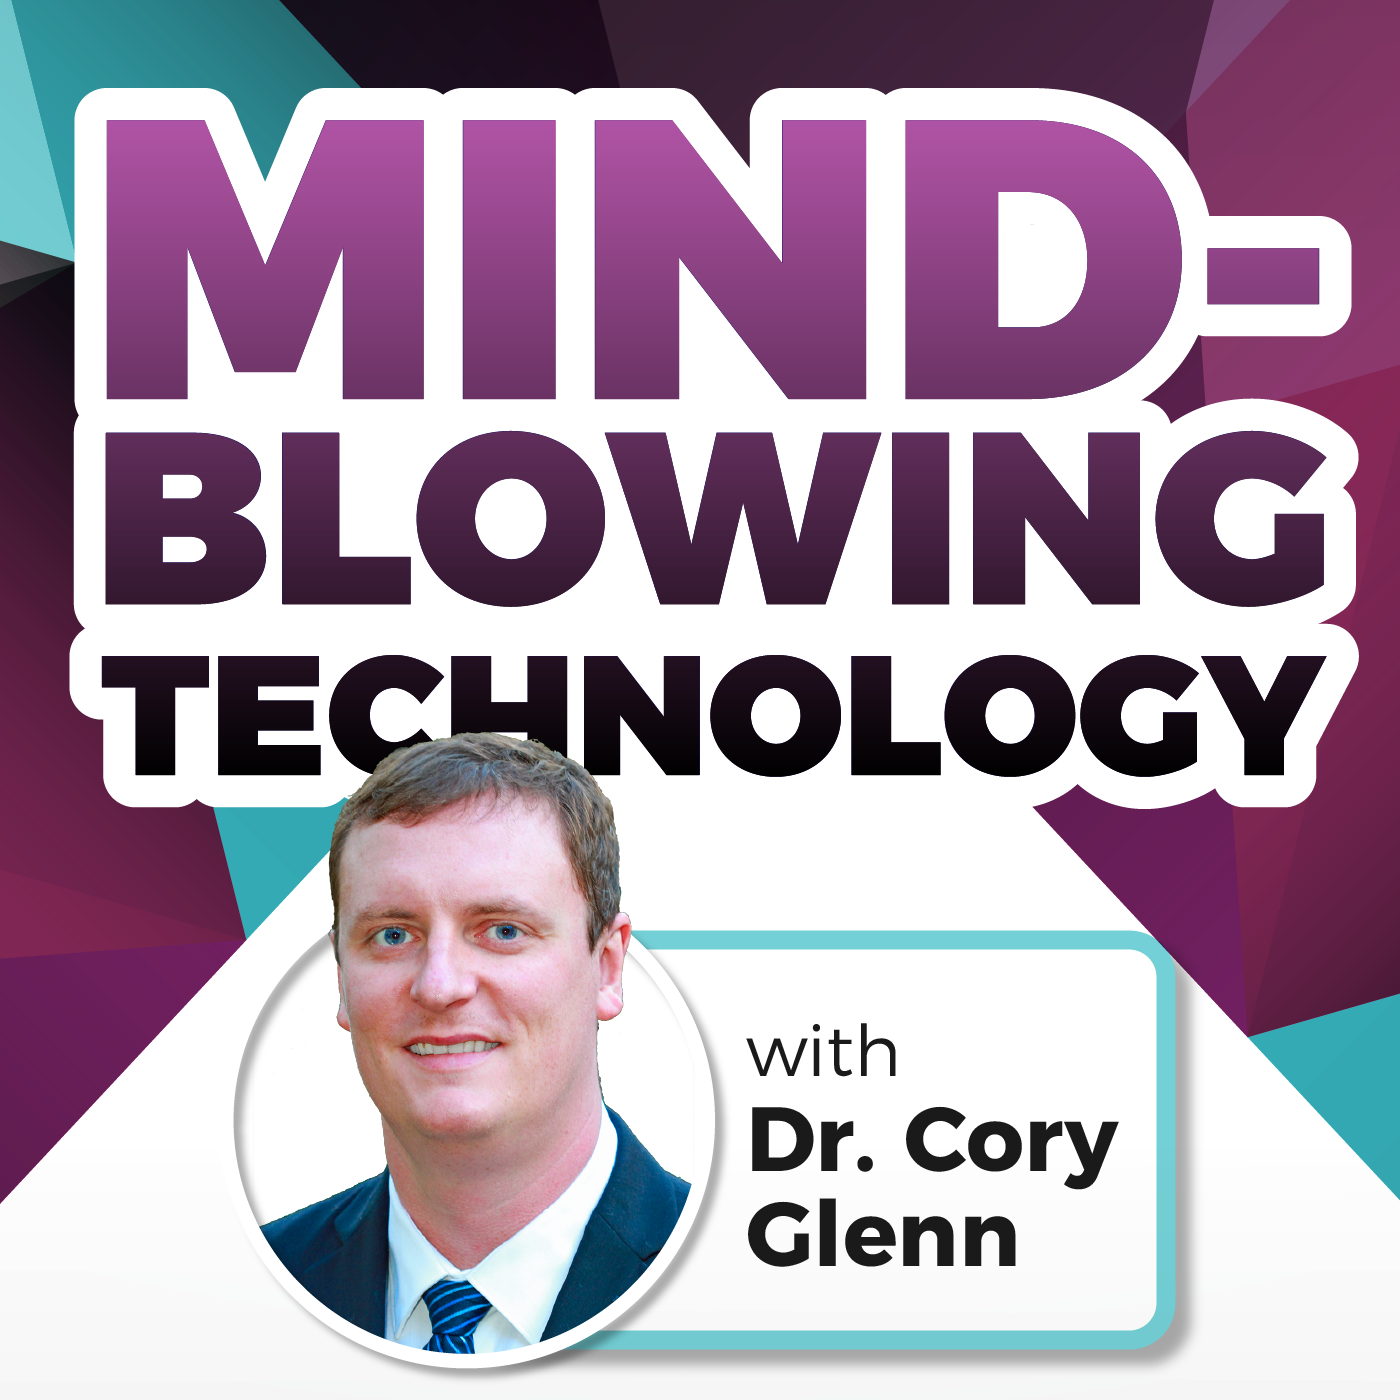 Artwork for DENTISTRY: Mind-Blowing Technology with Dr. Cory Glenn